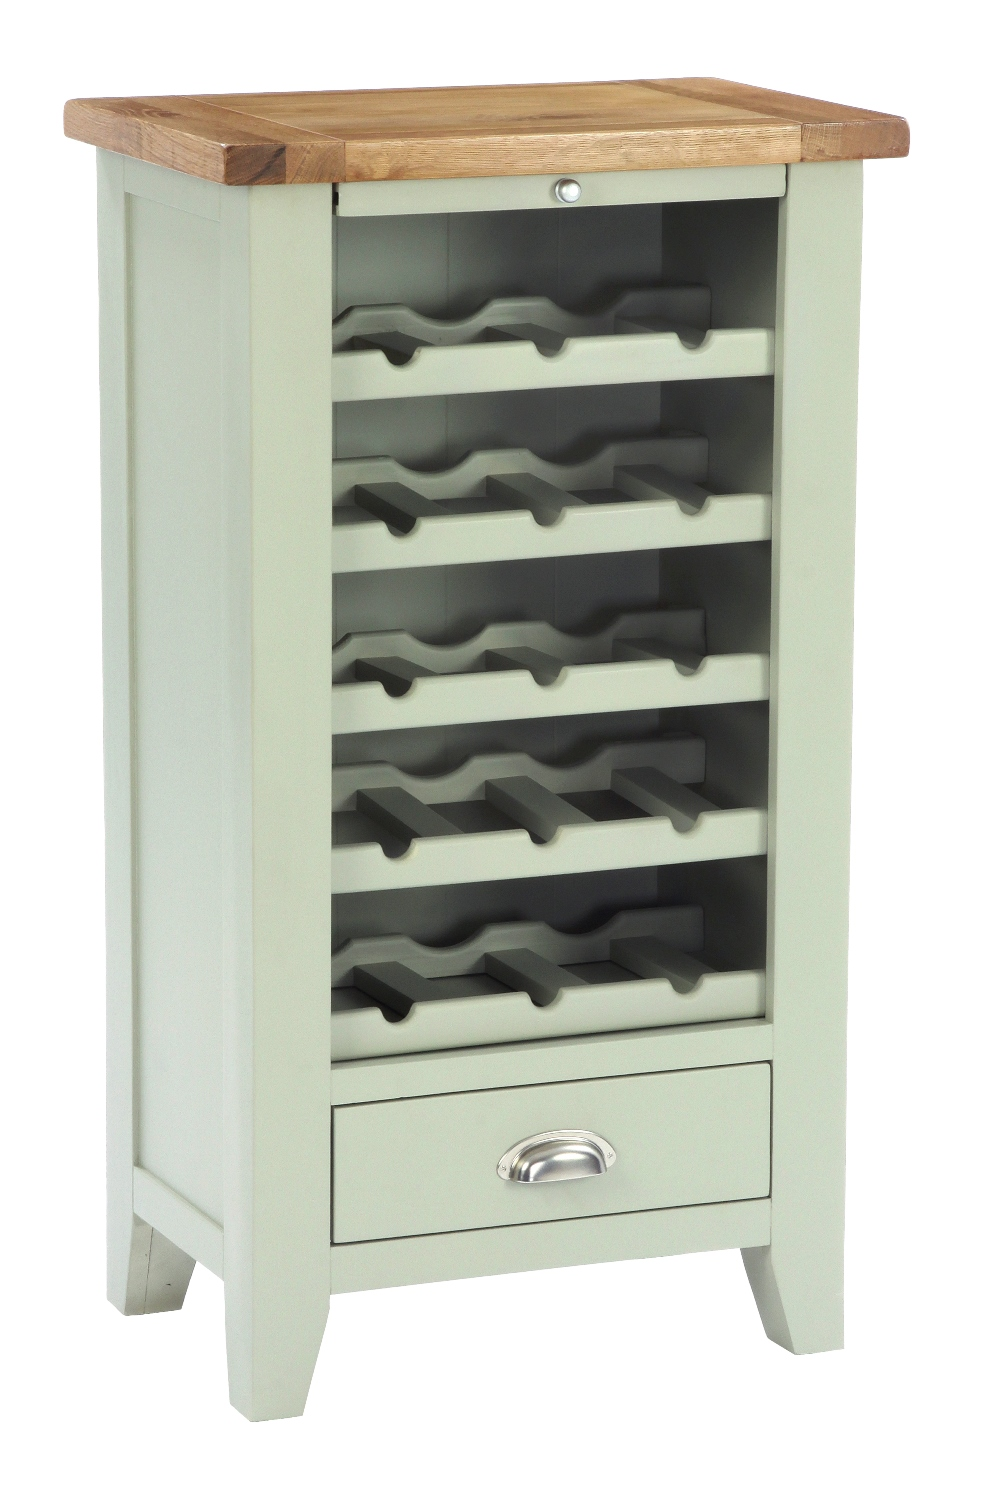 Wine Rack Colour-French Grey w 60 x d 40 x h 106 cm € 375 Product Code: ANB045